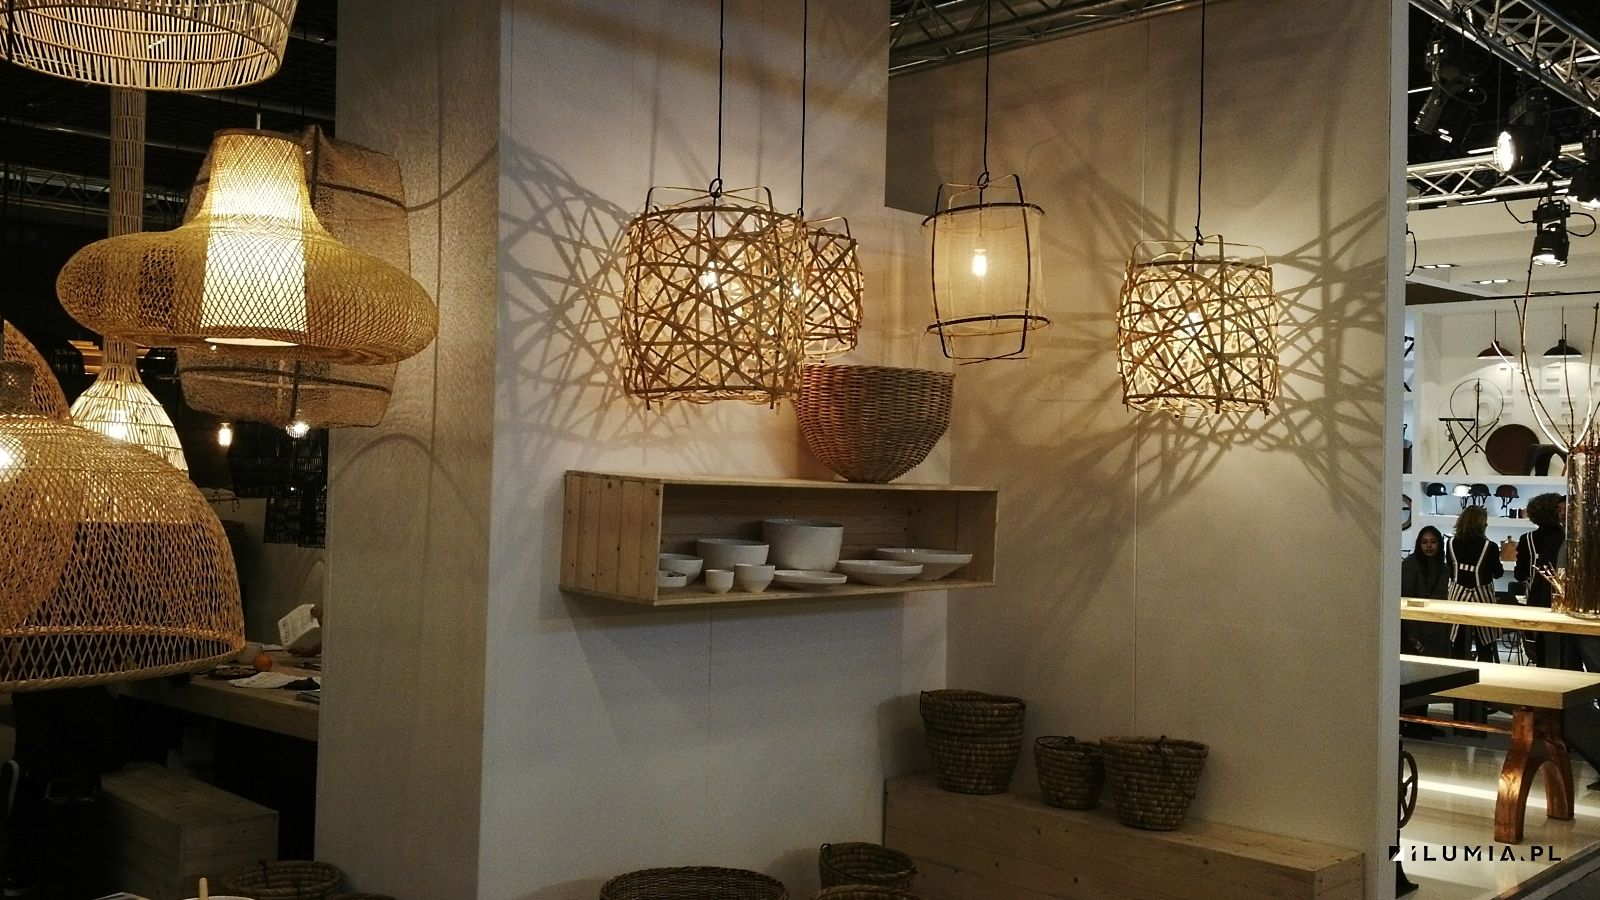 Design Ay Illuminate : Ay illuminate designs lamps inspired by nature. those items are